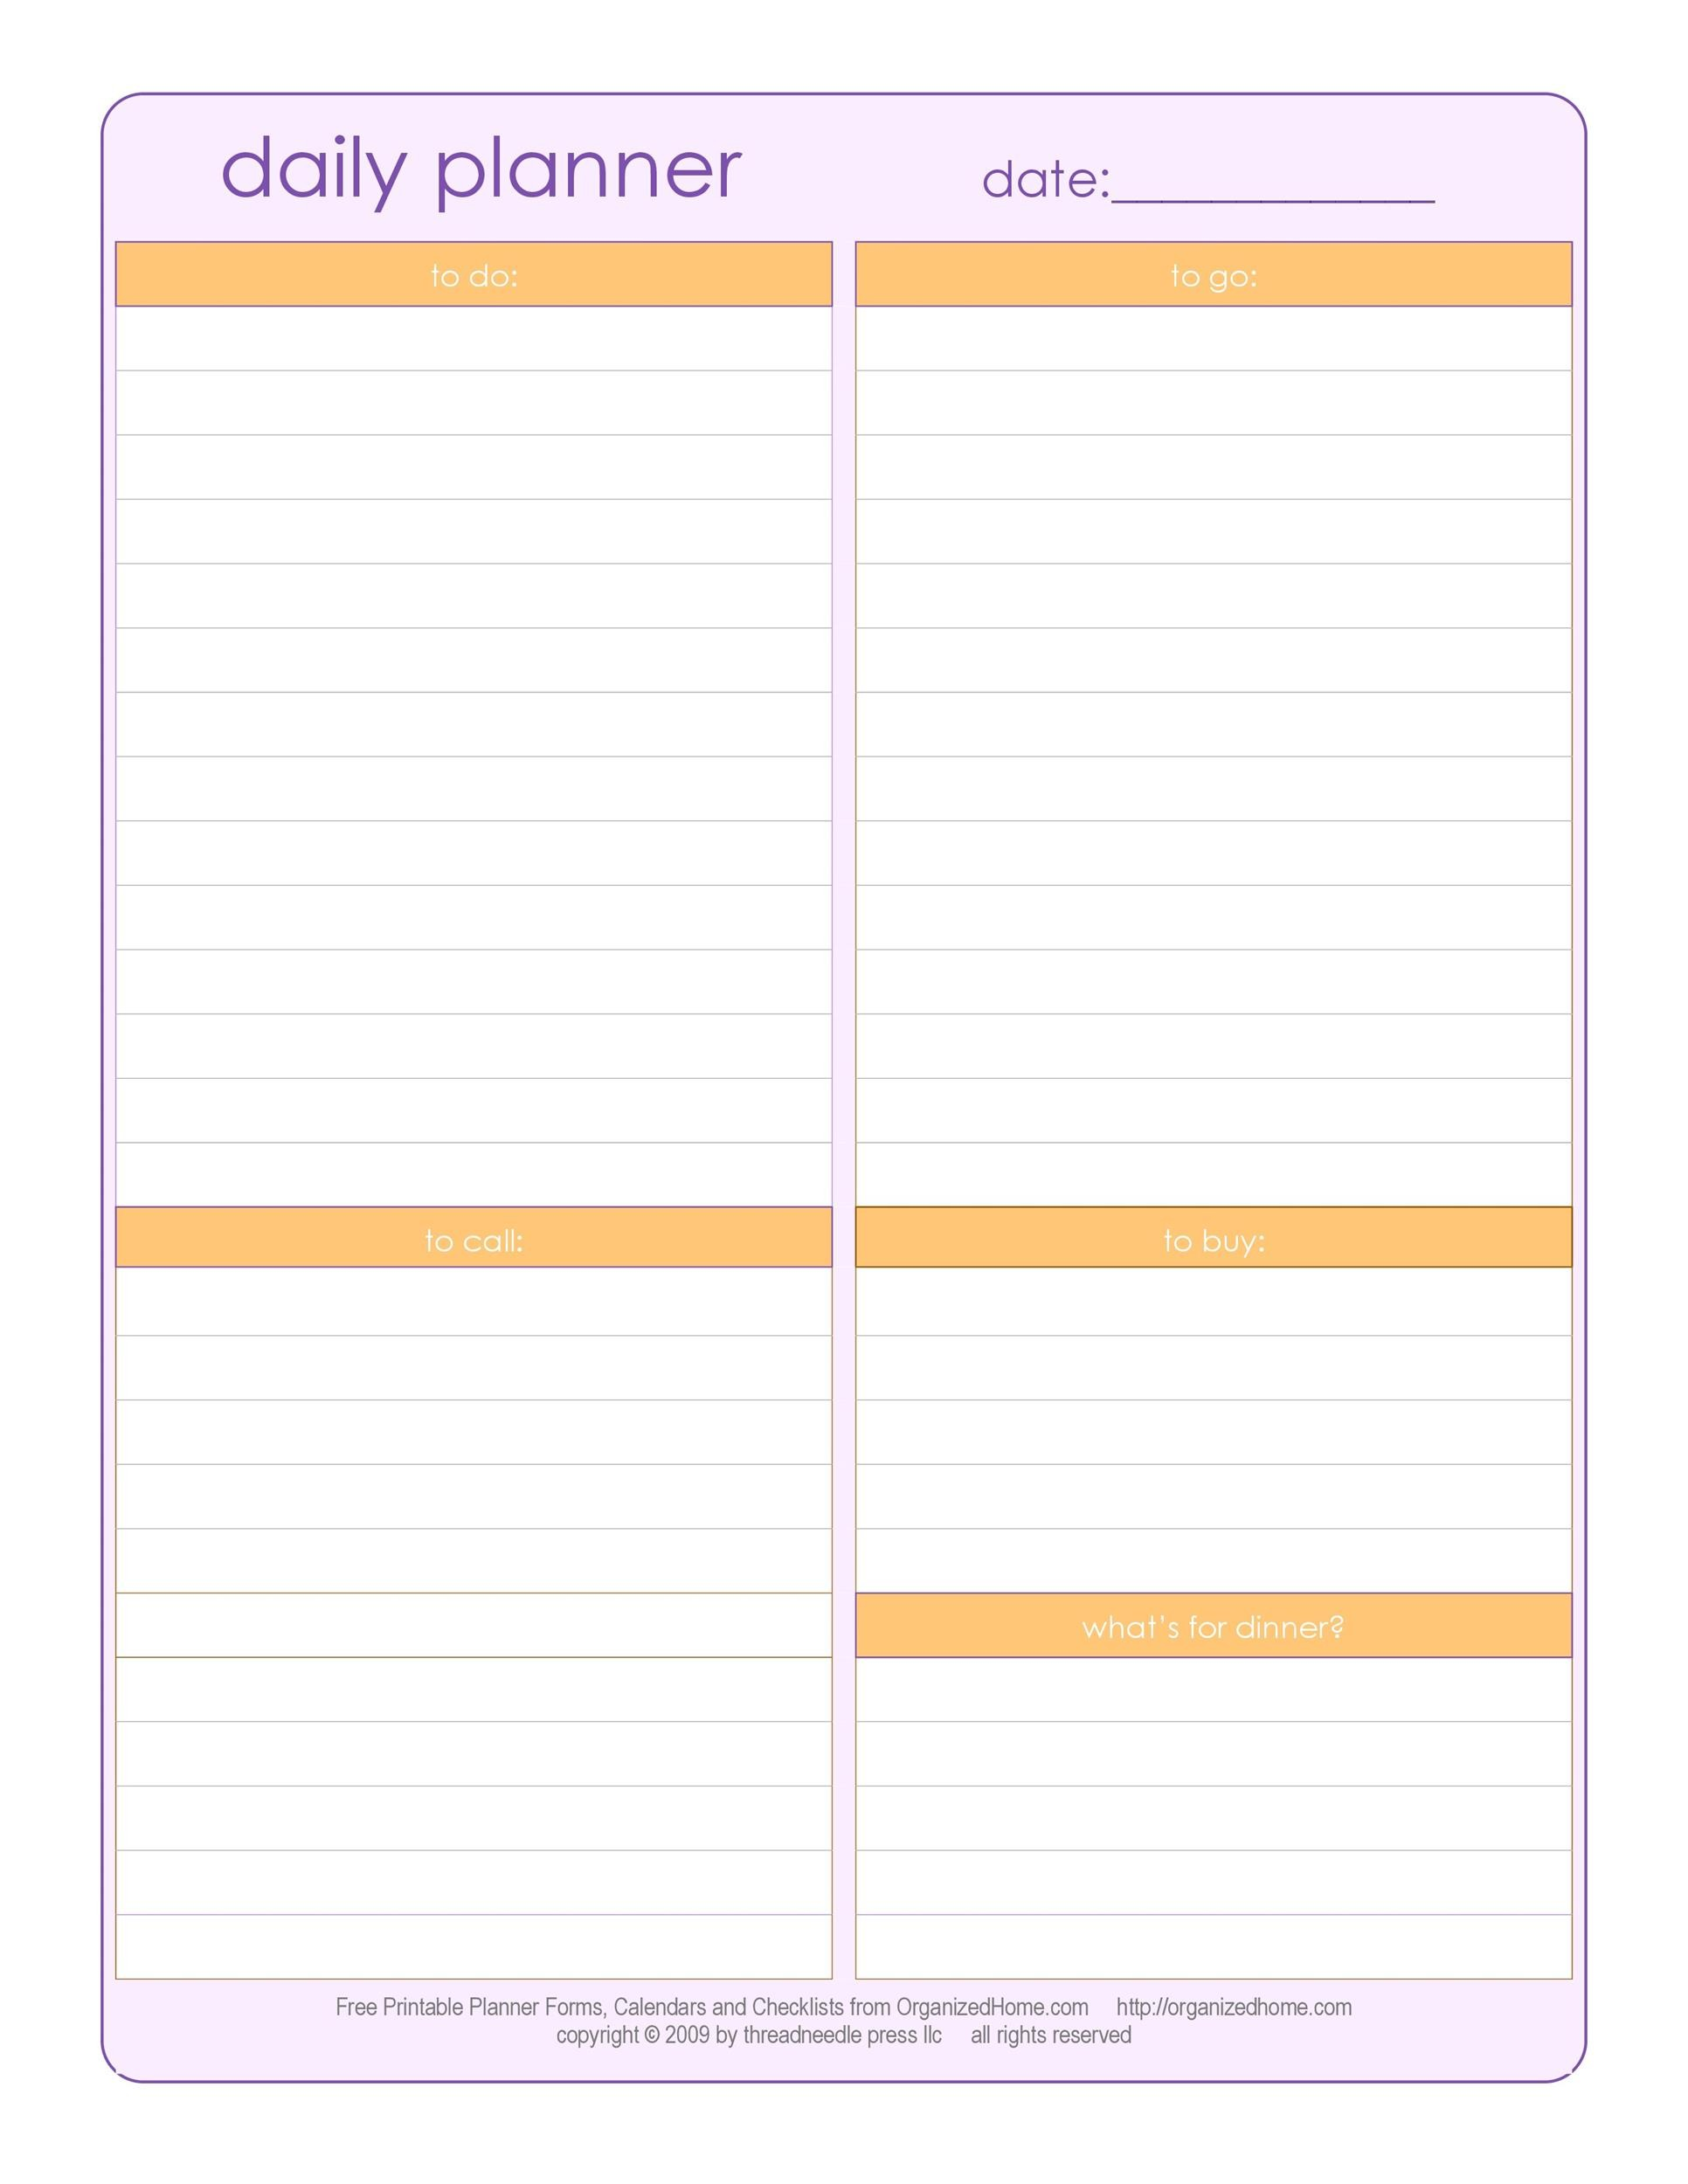 Calendar Planner Template : Printable daily planner templates free template lab